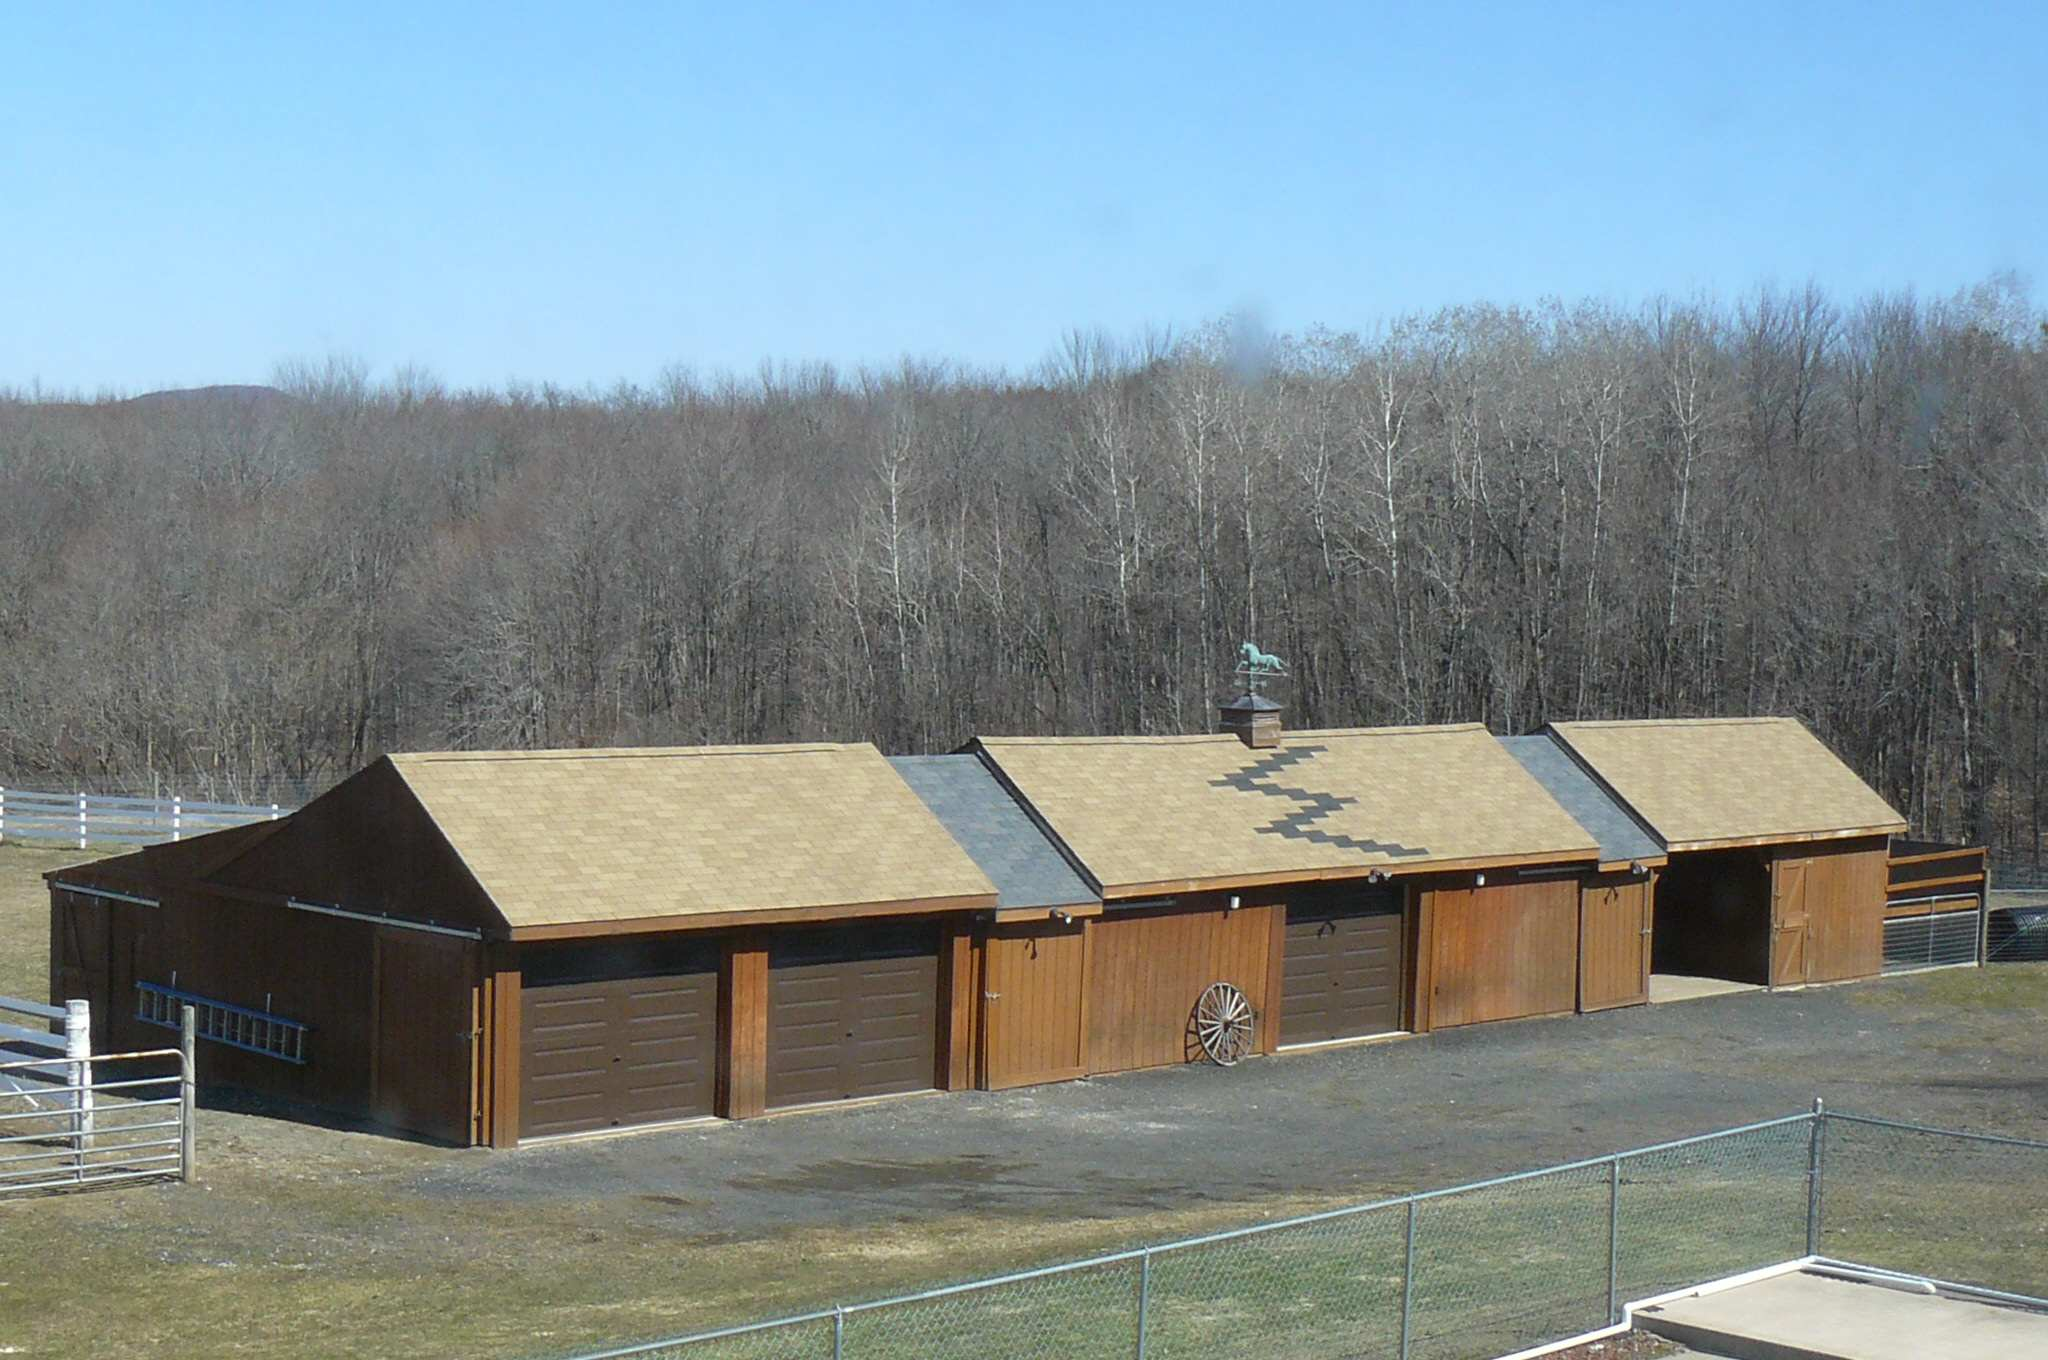 ForSaleByOwner (FSBO) home in Granby, MA at ForSaleByOwnerBuyersGuide.com